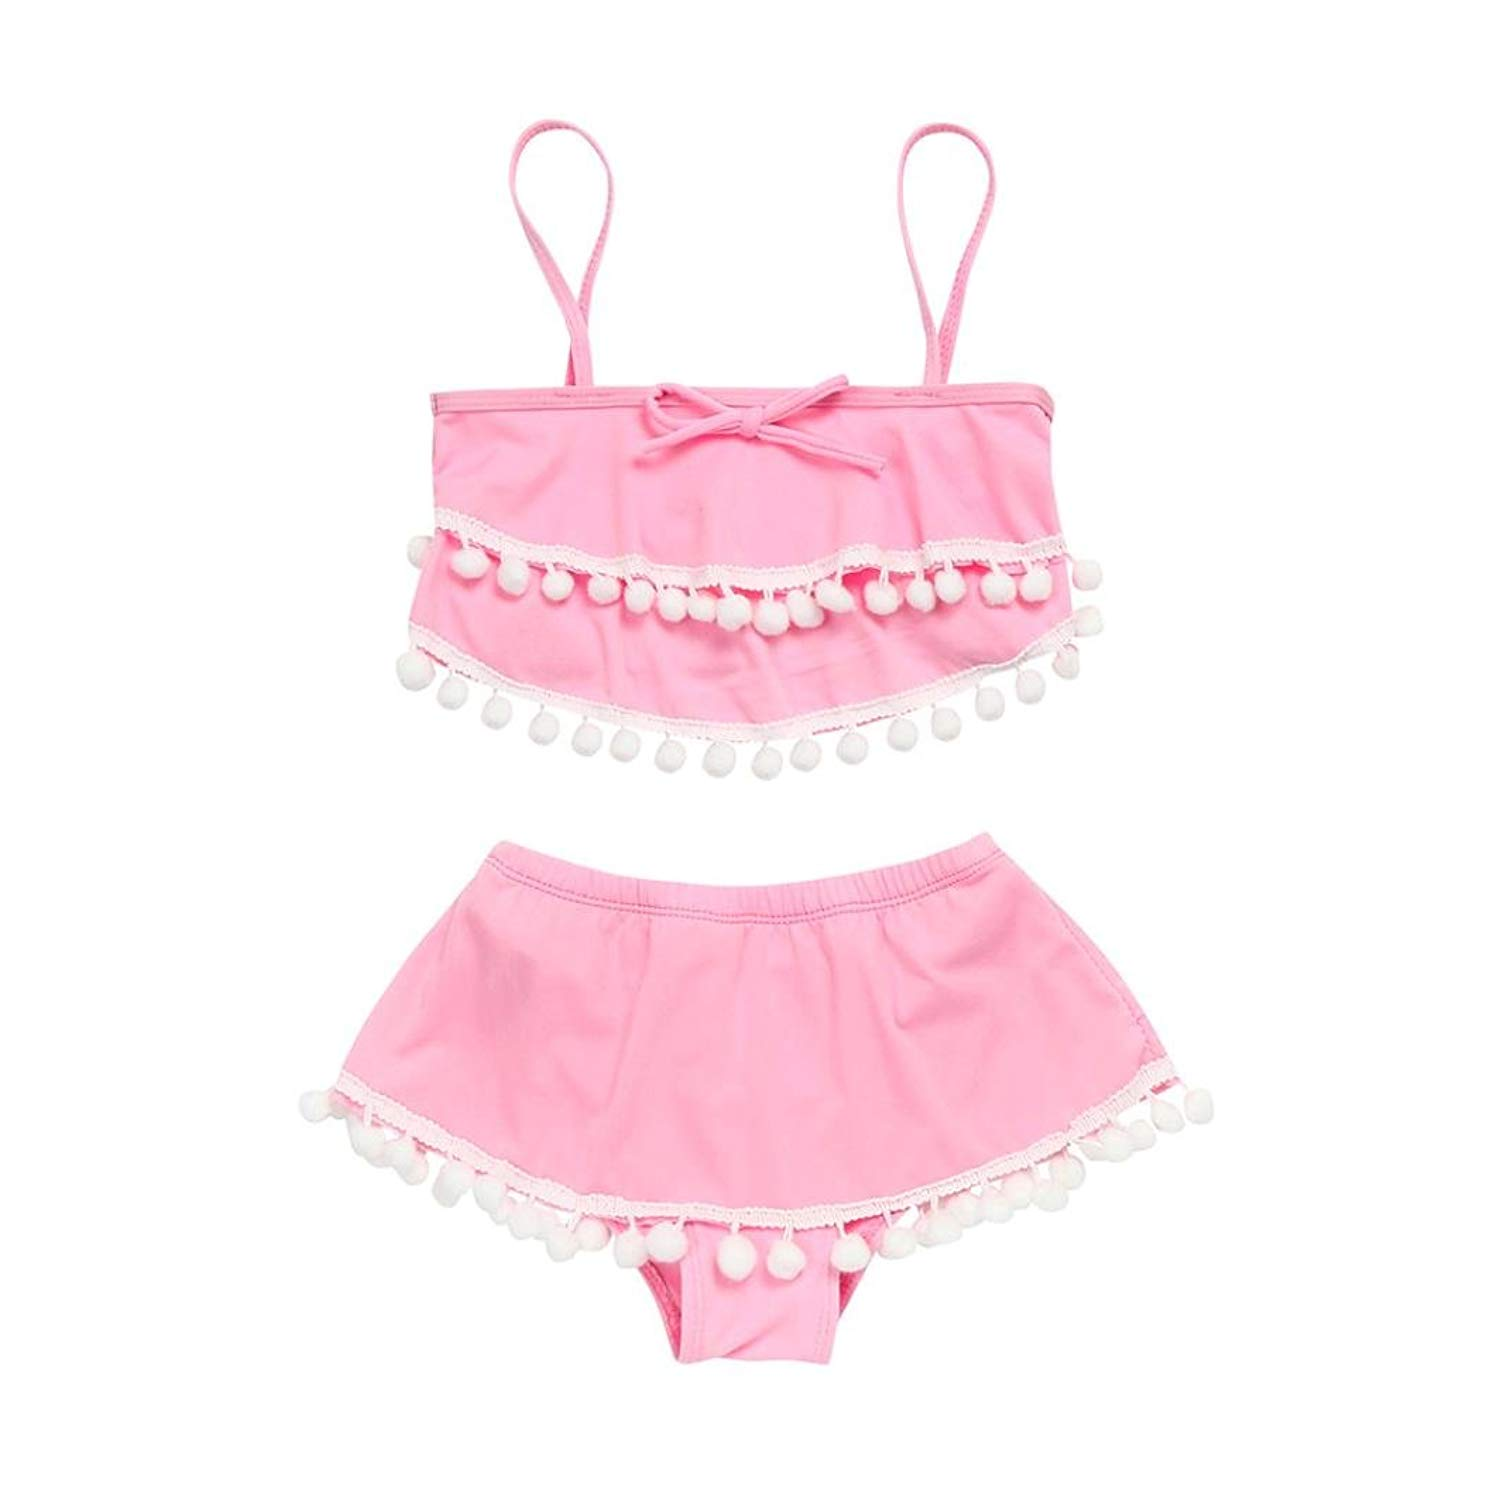 993e94caff Get Quotations · Goodlock Girls Swimsuit, Toddler Kids Baby Girls Tassel  Ball Straps Shorts Swimsuits Bathing Suits Sets